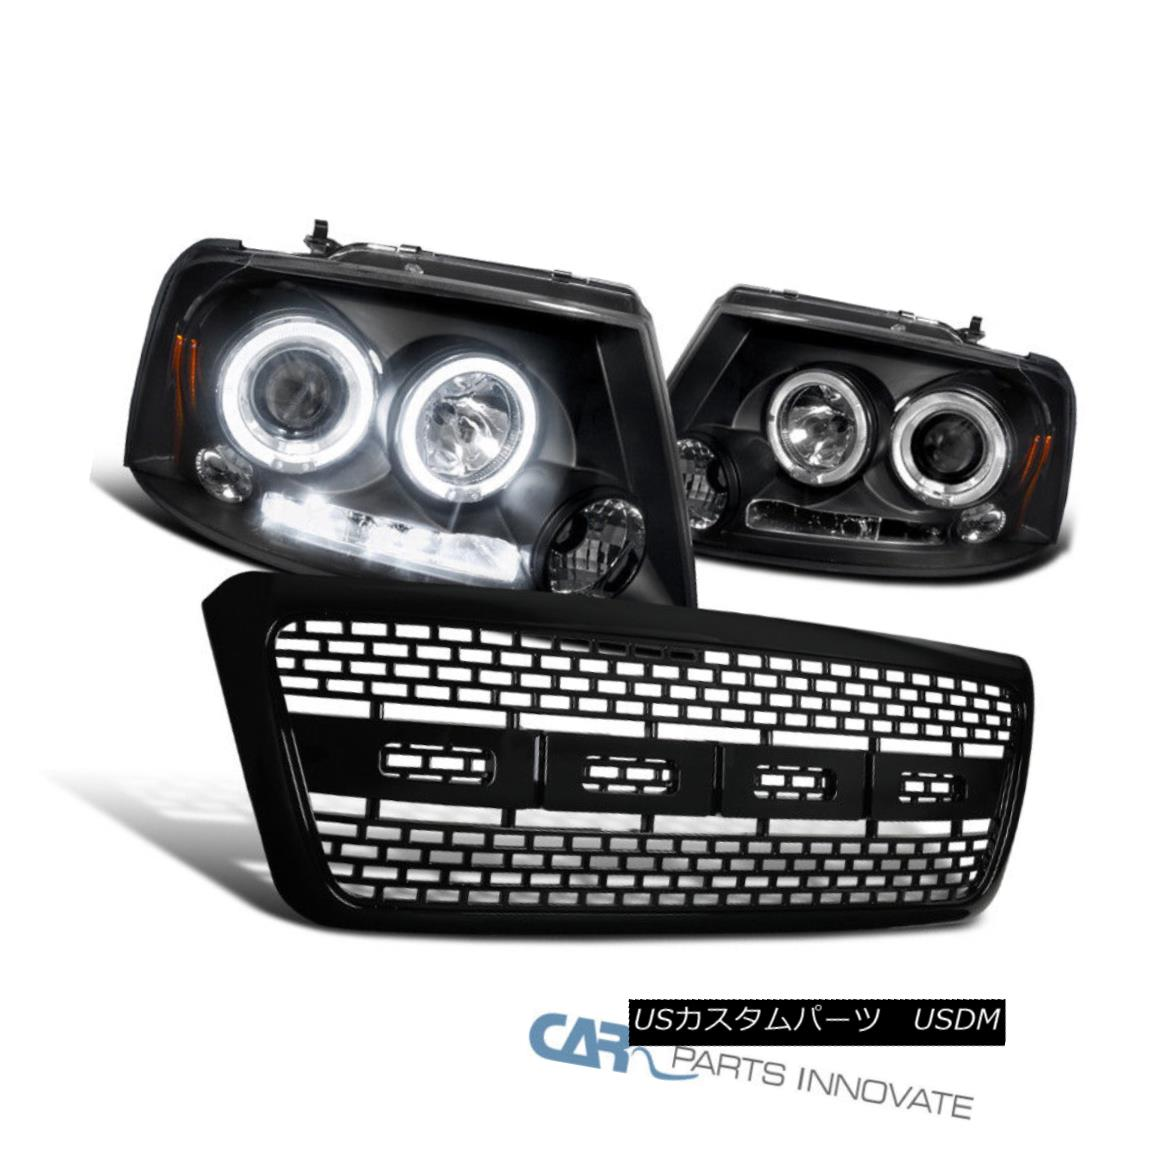 グリル Ford 04-08 F150 Black Halo LED Projector Headlights Clear+Raptor Hood Grille Ford 04-08 F150 Black Halo LEDプロジェクターヘッドライトClear + Raptor Hood Grille